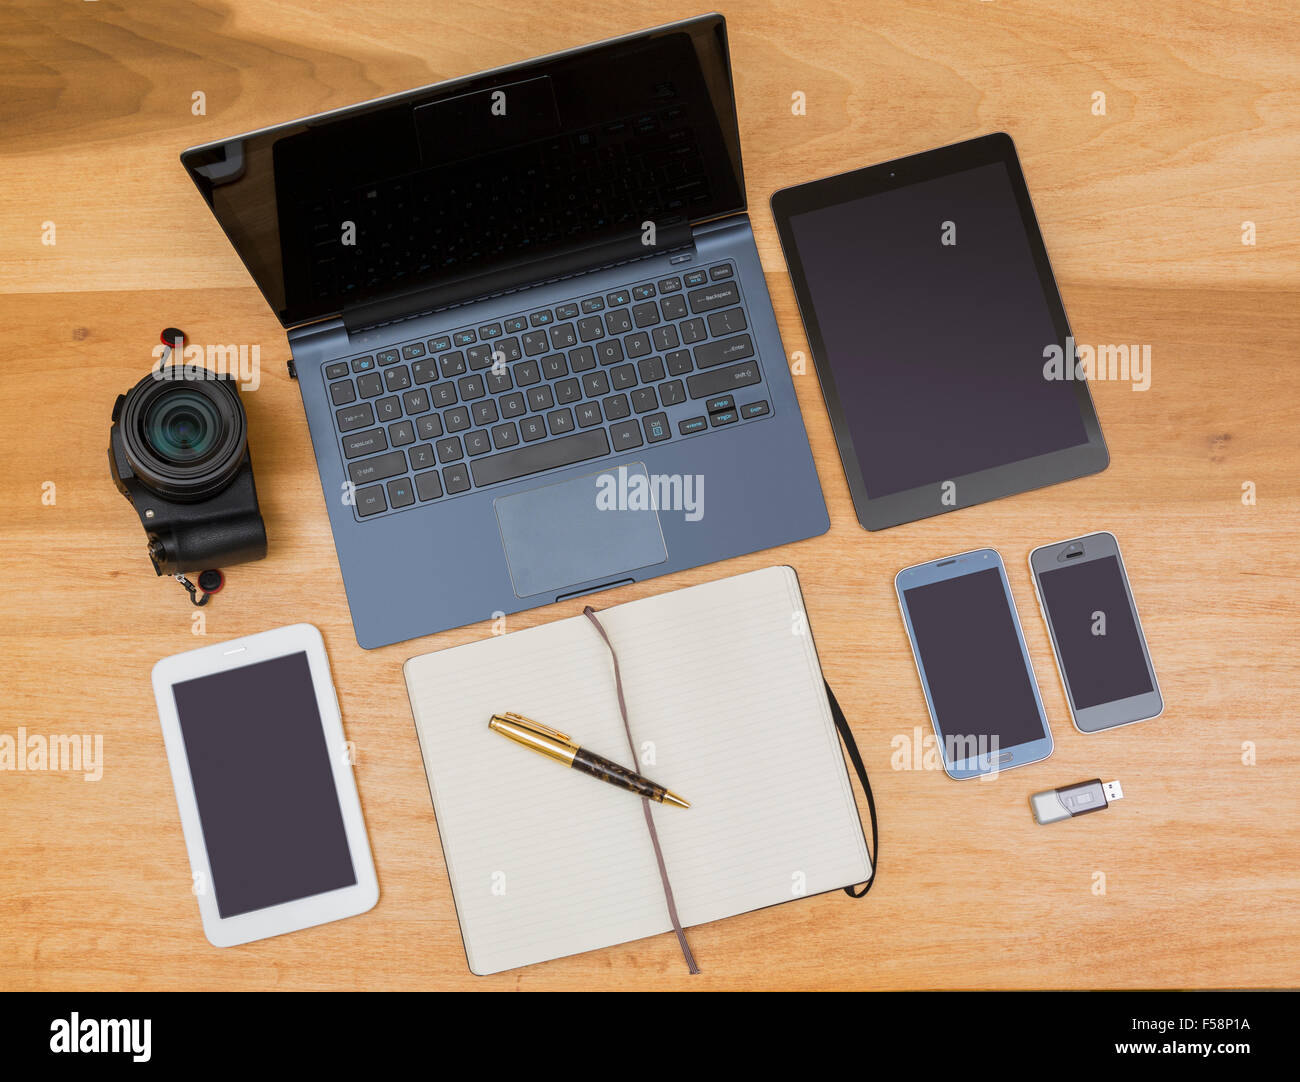 Overhead view of desk with laptop, smartphones, tablets, camera and notebook and pen - digital design / evolution - Stock Image